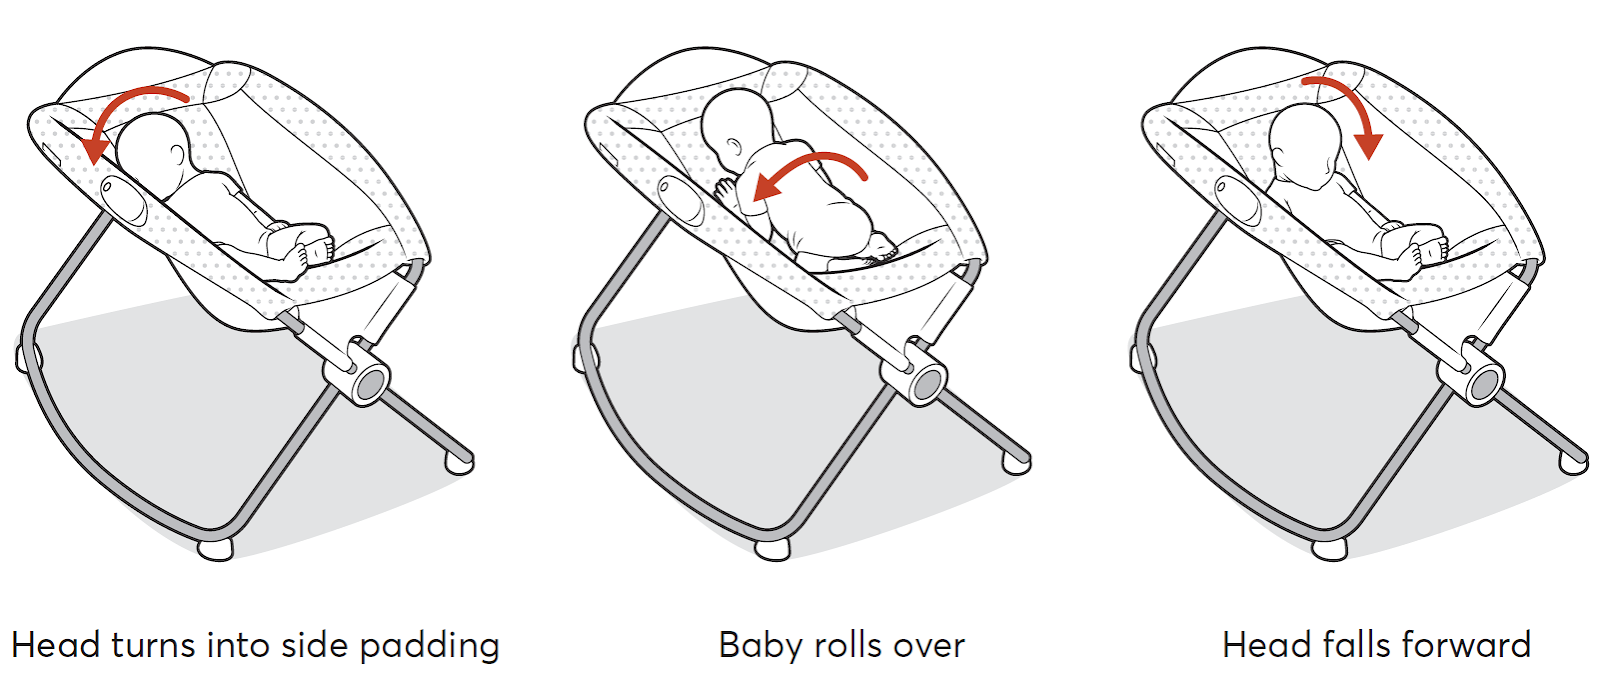 Illustration showing how infants can suffocate in inclined sleepers. Illustration by Chris Philpot for Consumer Reports.